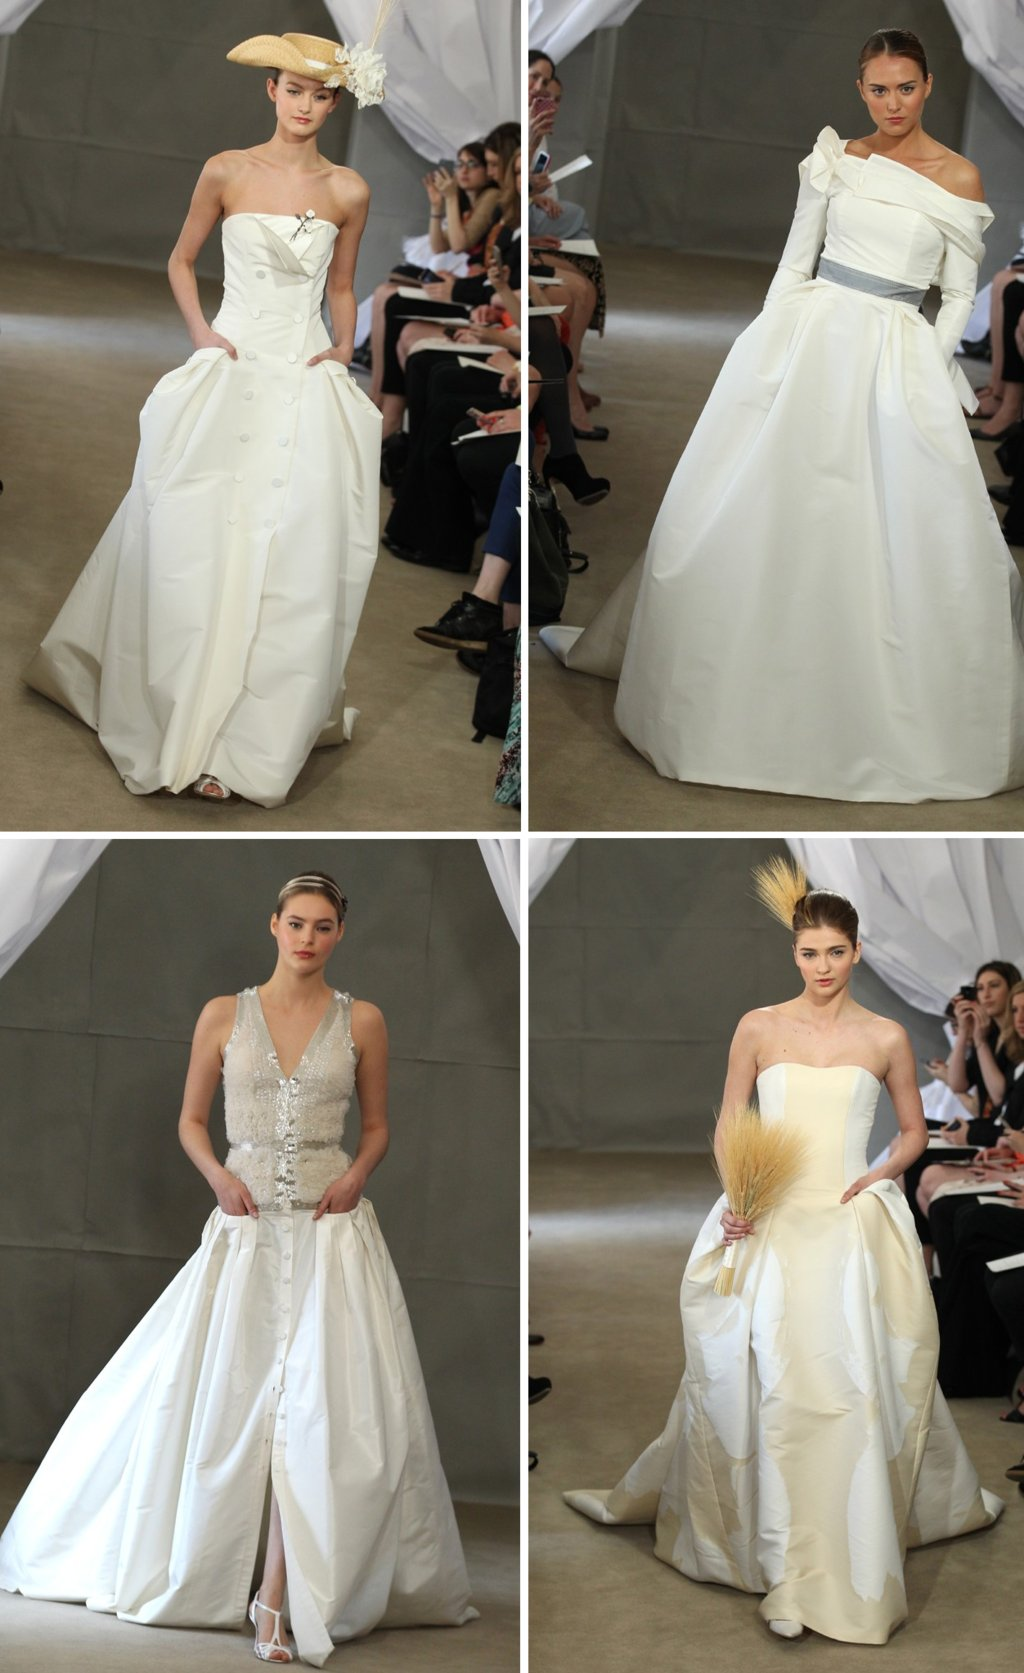 2013-wedding-dress-trends-pockets-carolina-herrera-bridal-gowns.full